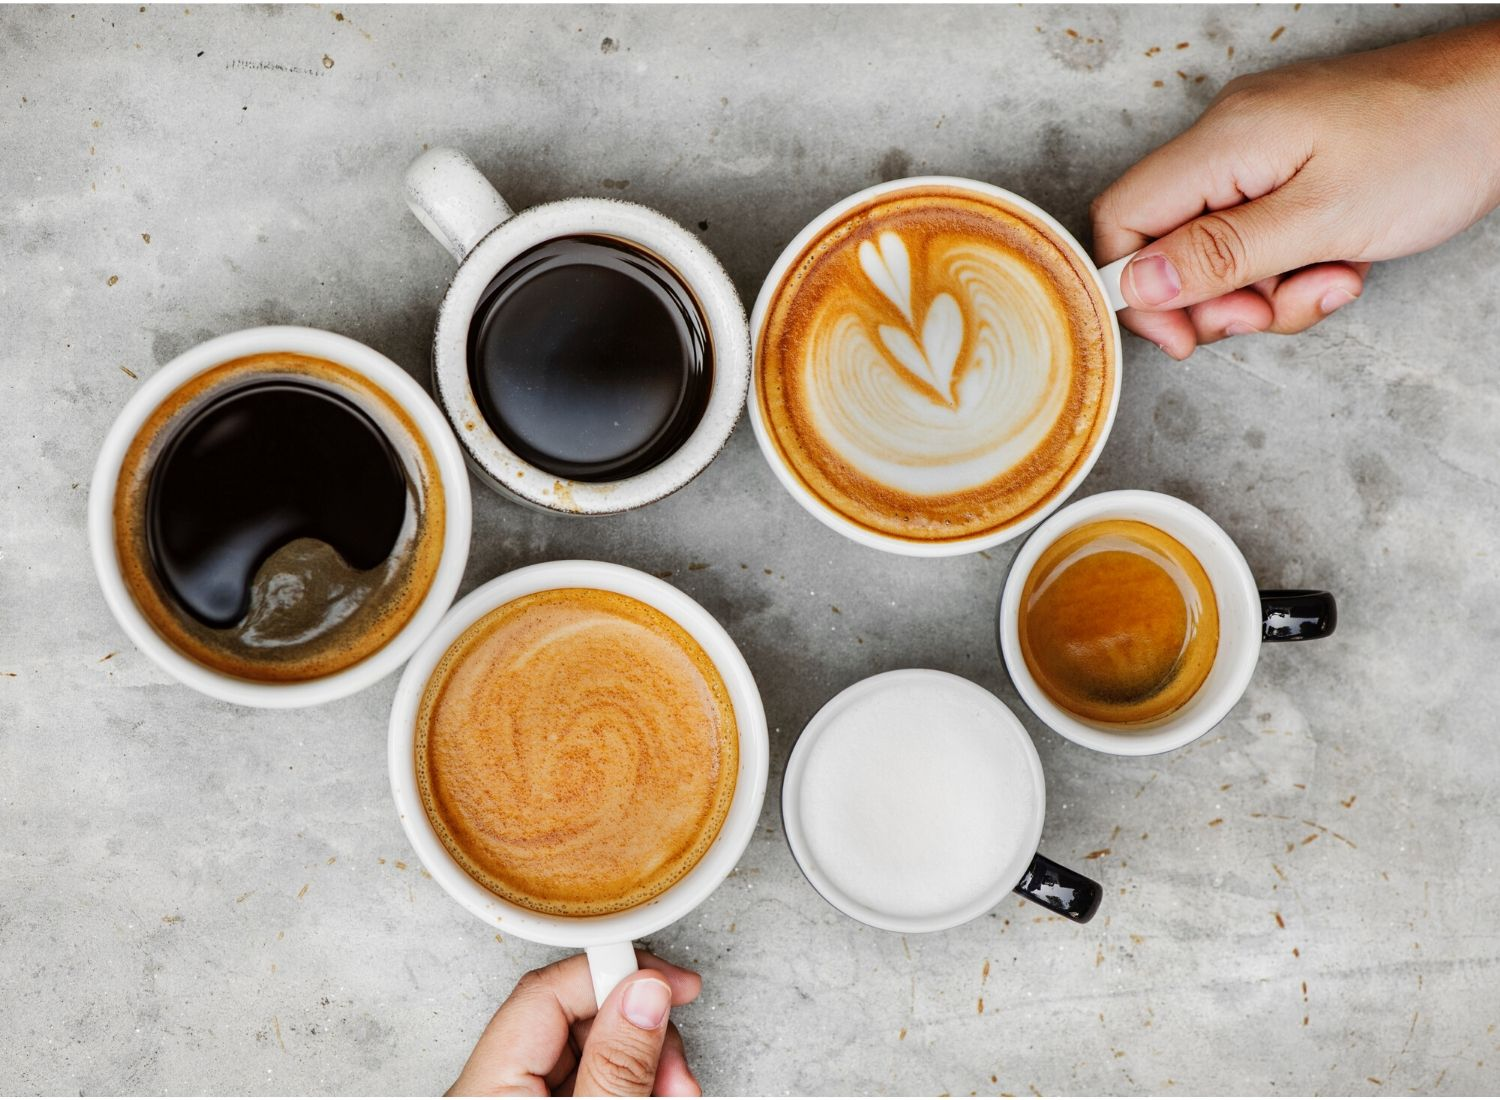 Can Coffee Really Increase Your Level Of Productivity?